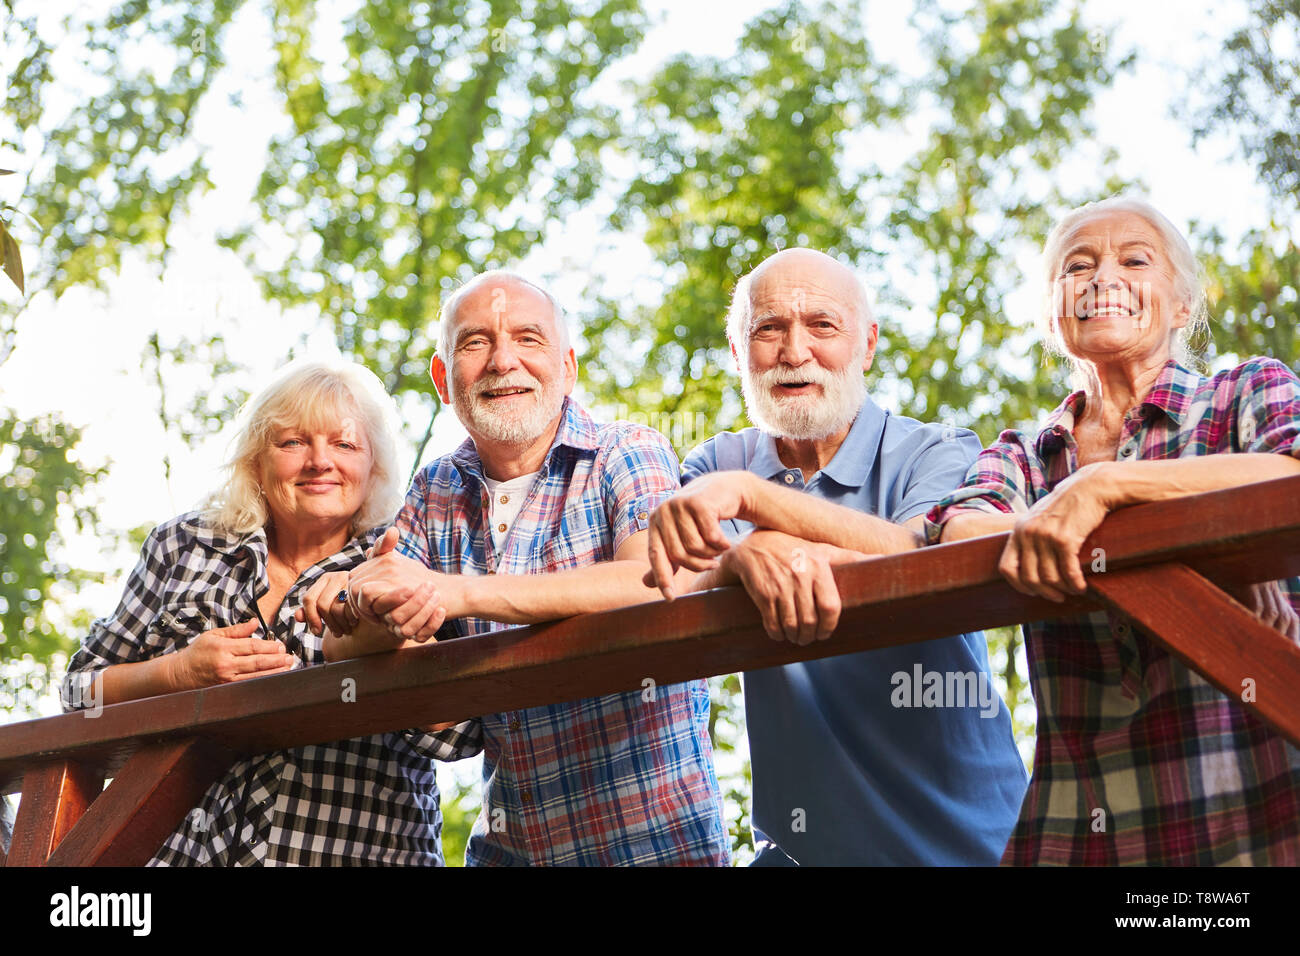 Seniors as friends are leaning against a bridge railing on a tour - Stock Image